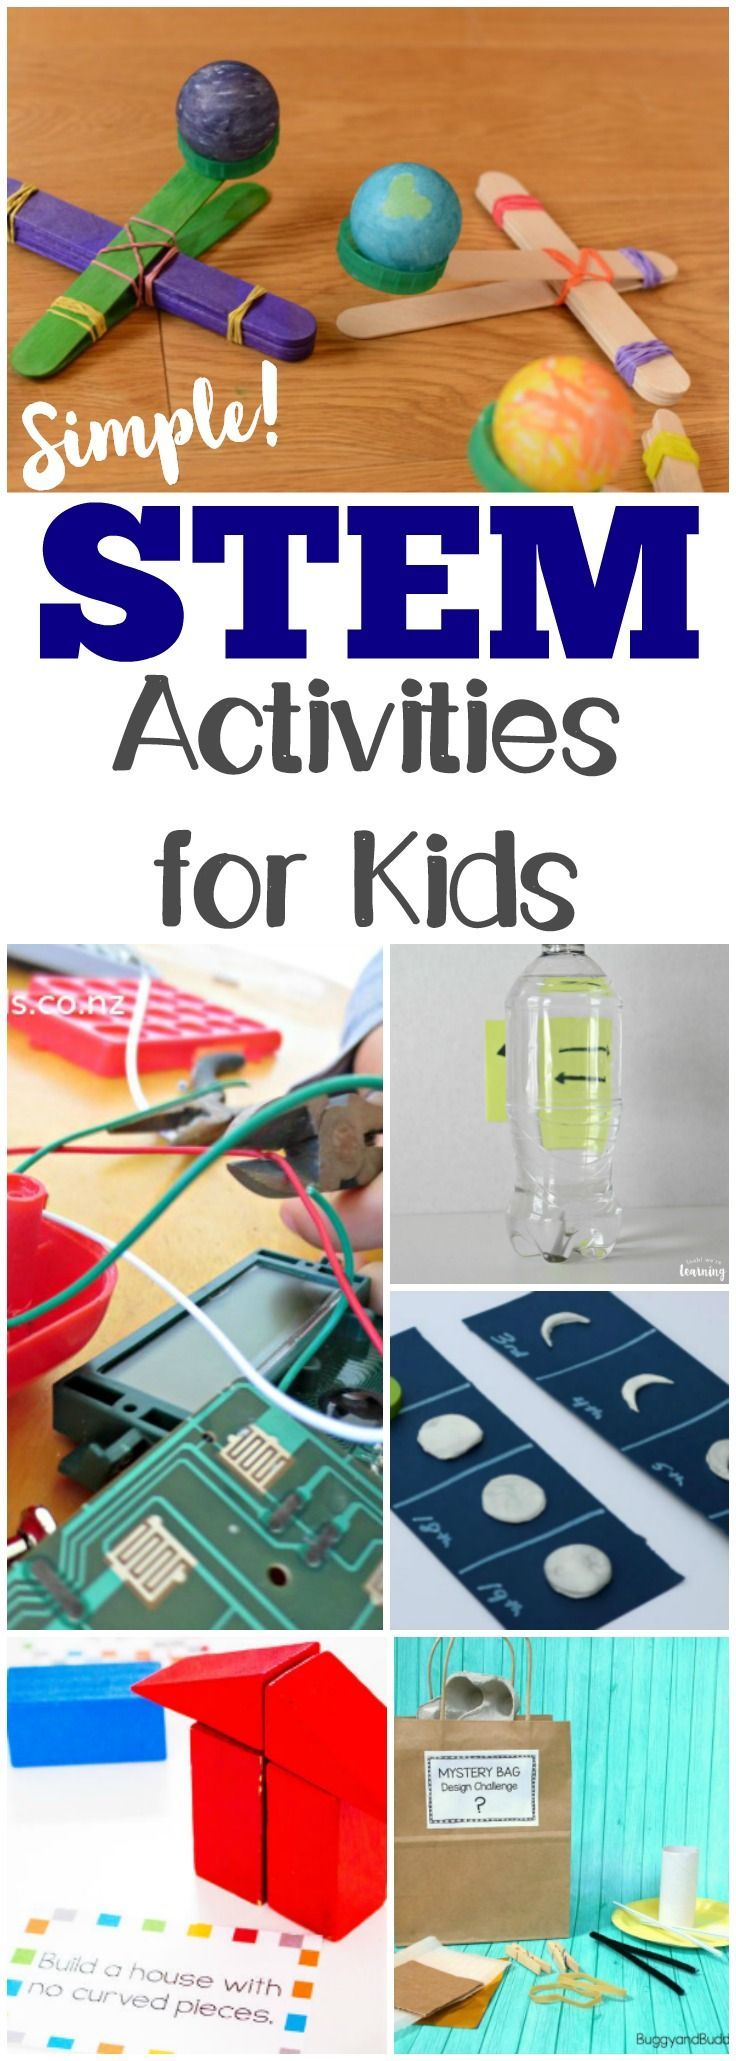 45 Easy STEM Activities for Kids - Science activities for kids, Preschool science activities, Stem activities, Easy stem, Learning science, Stem for kids - These easy STEM activities for kids are great for adding some handson fun to learning science, technology, engineering, and math!